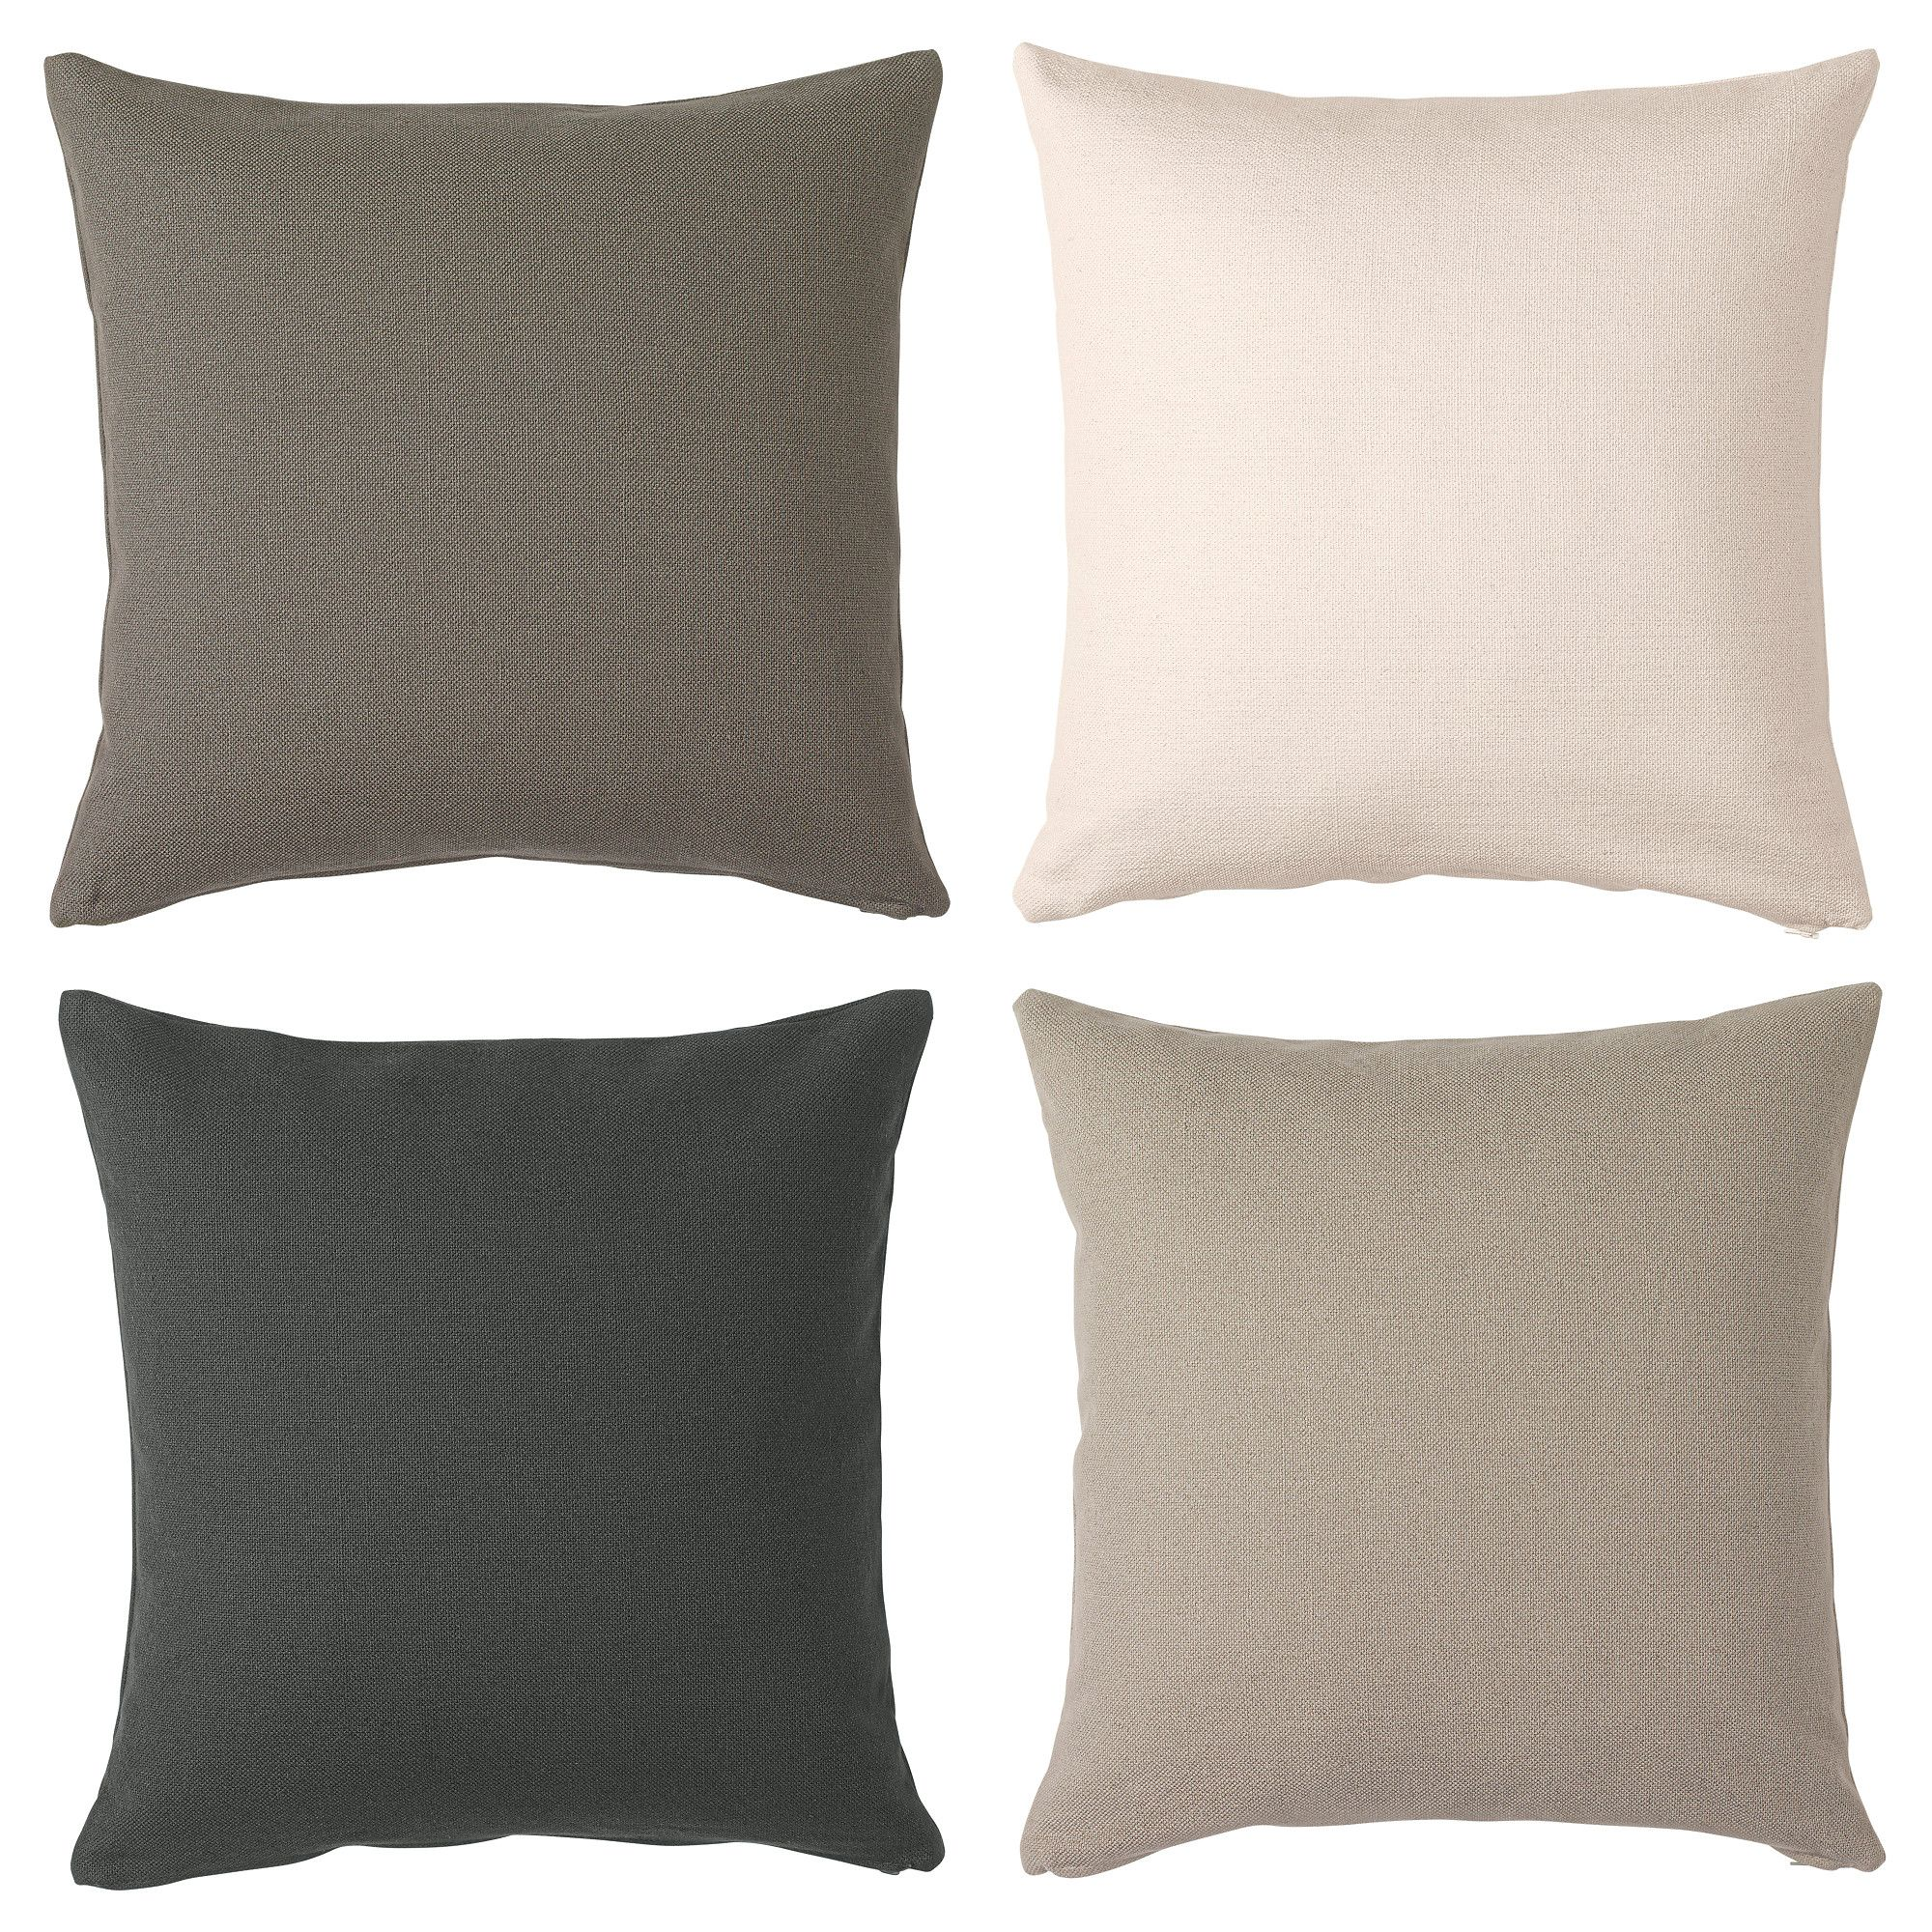 Affordable Throw Pillows Canada